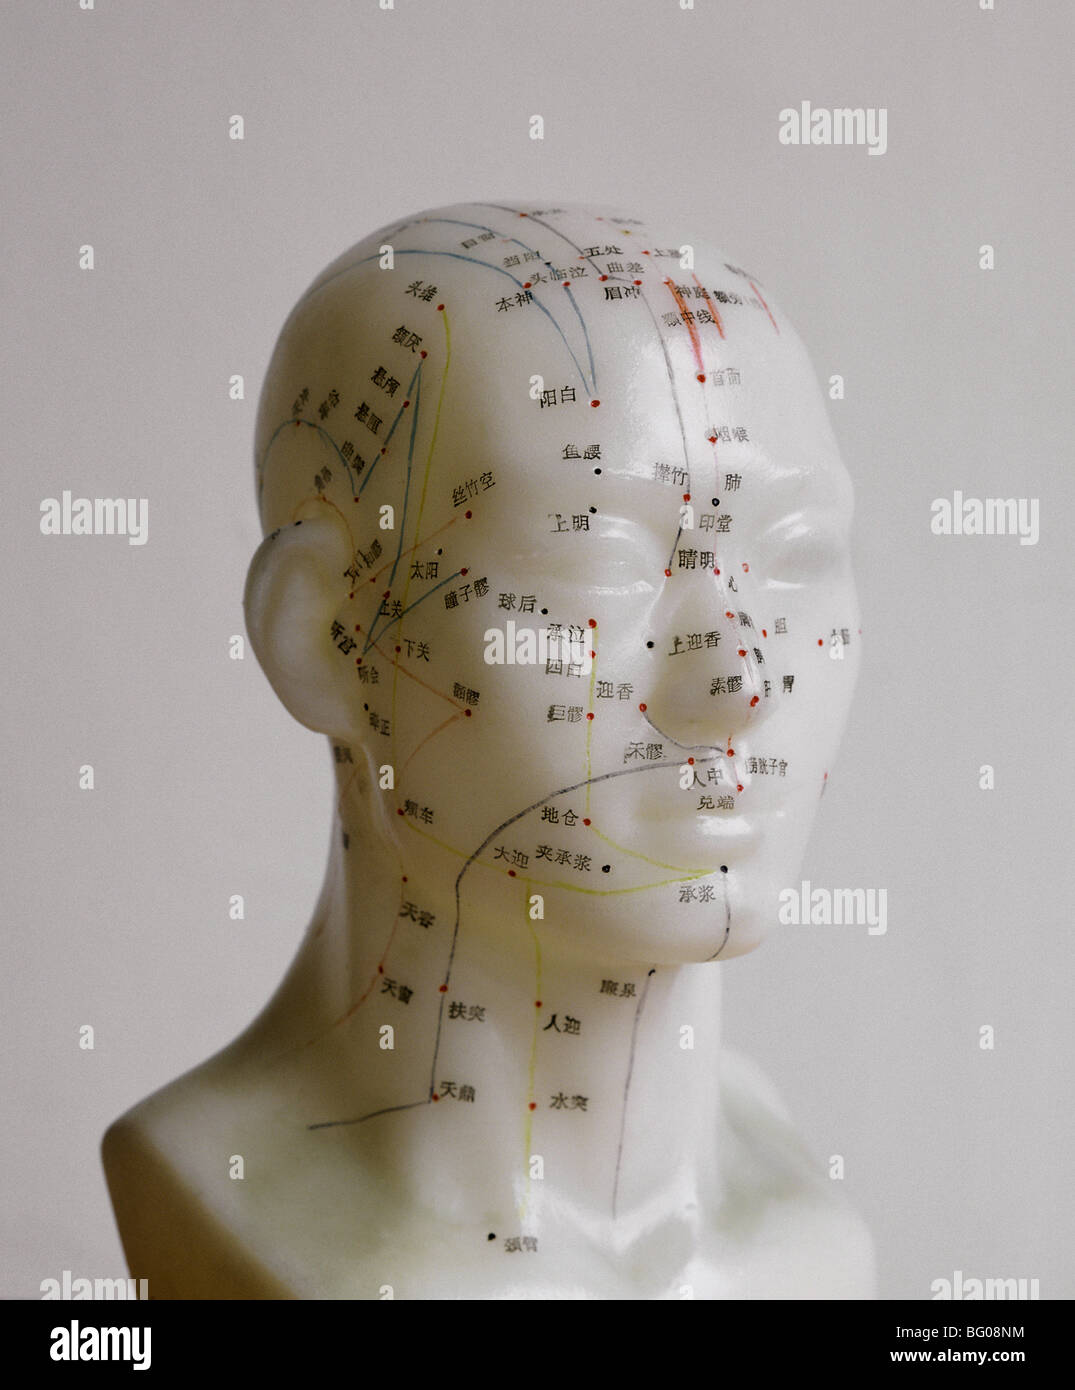 Acupuncture points, Chinese Medicine - Stock Image